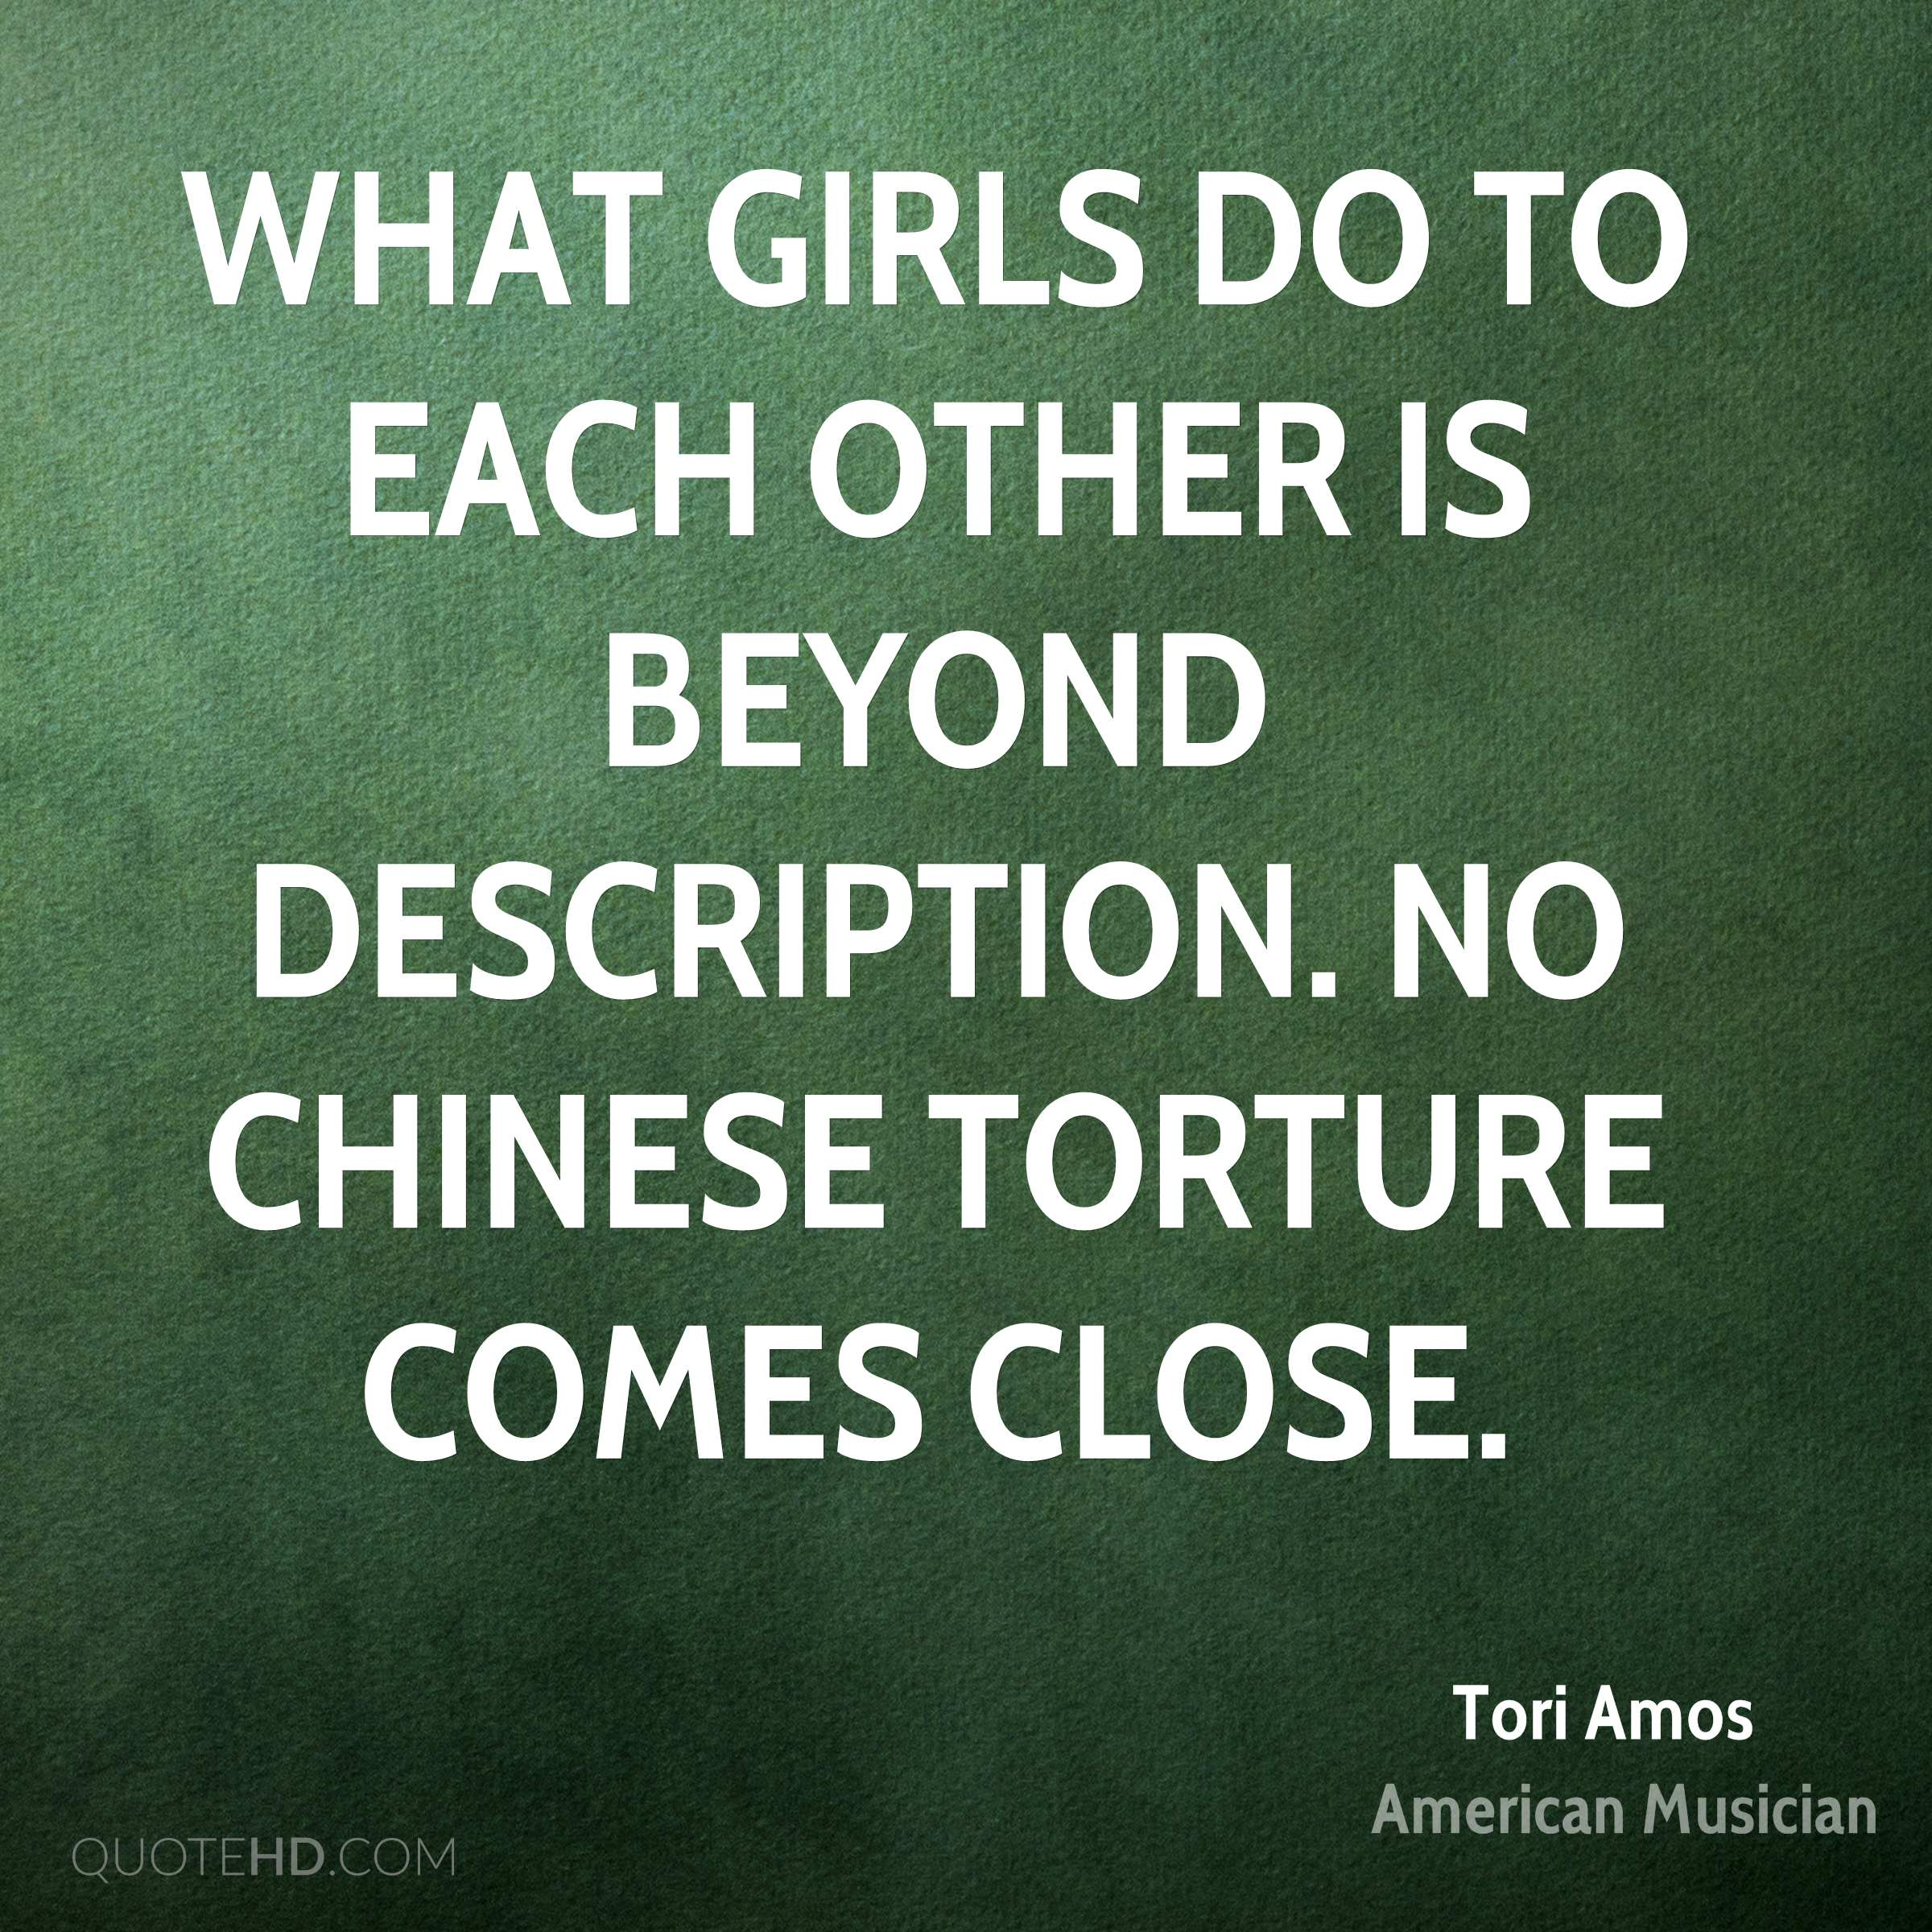 What girls do to each other is beyond description. No chinese torture comes close.